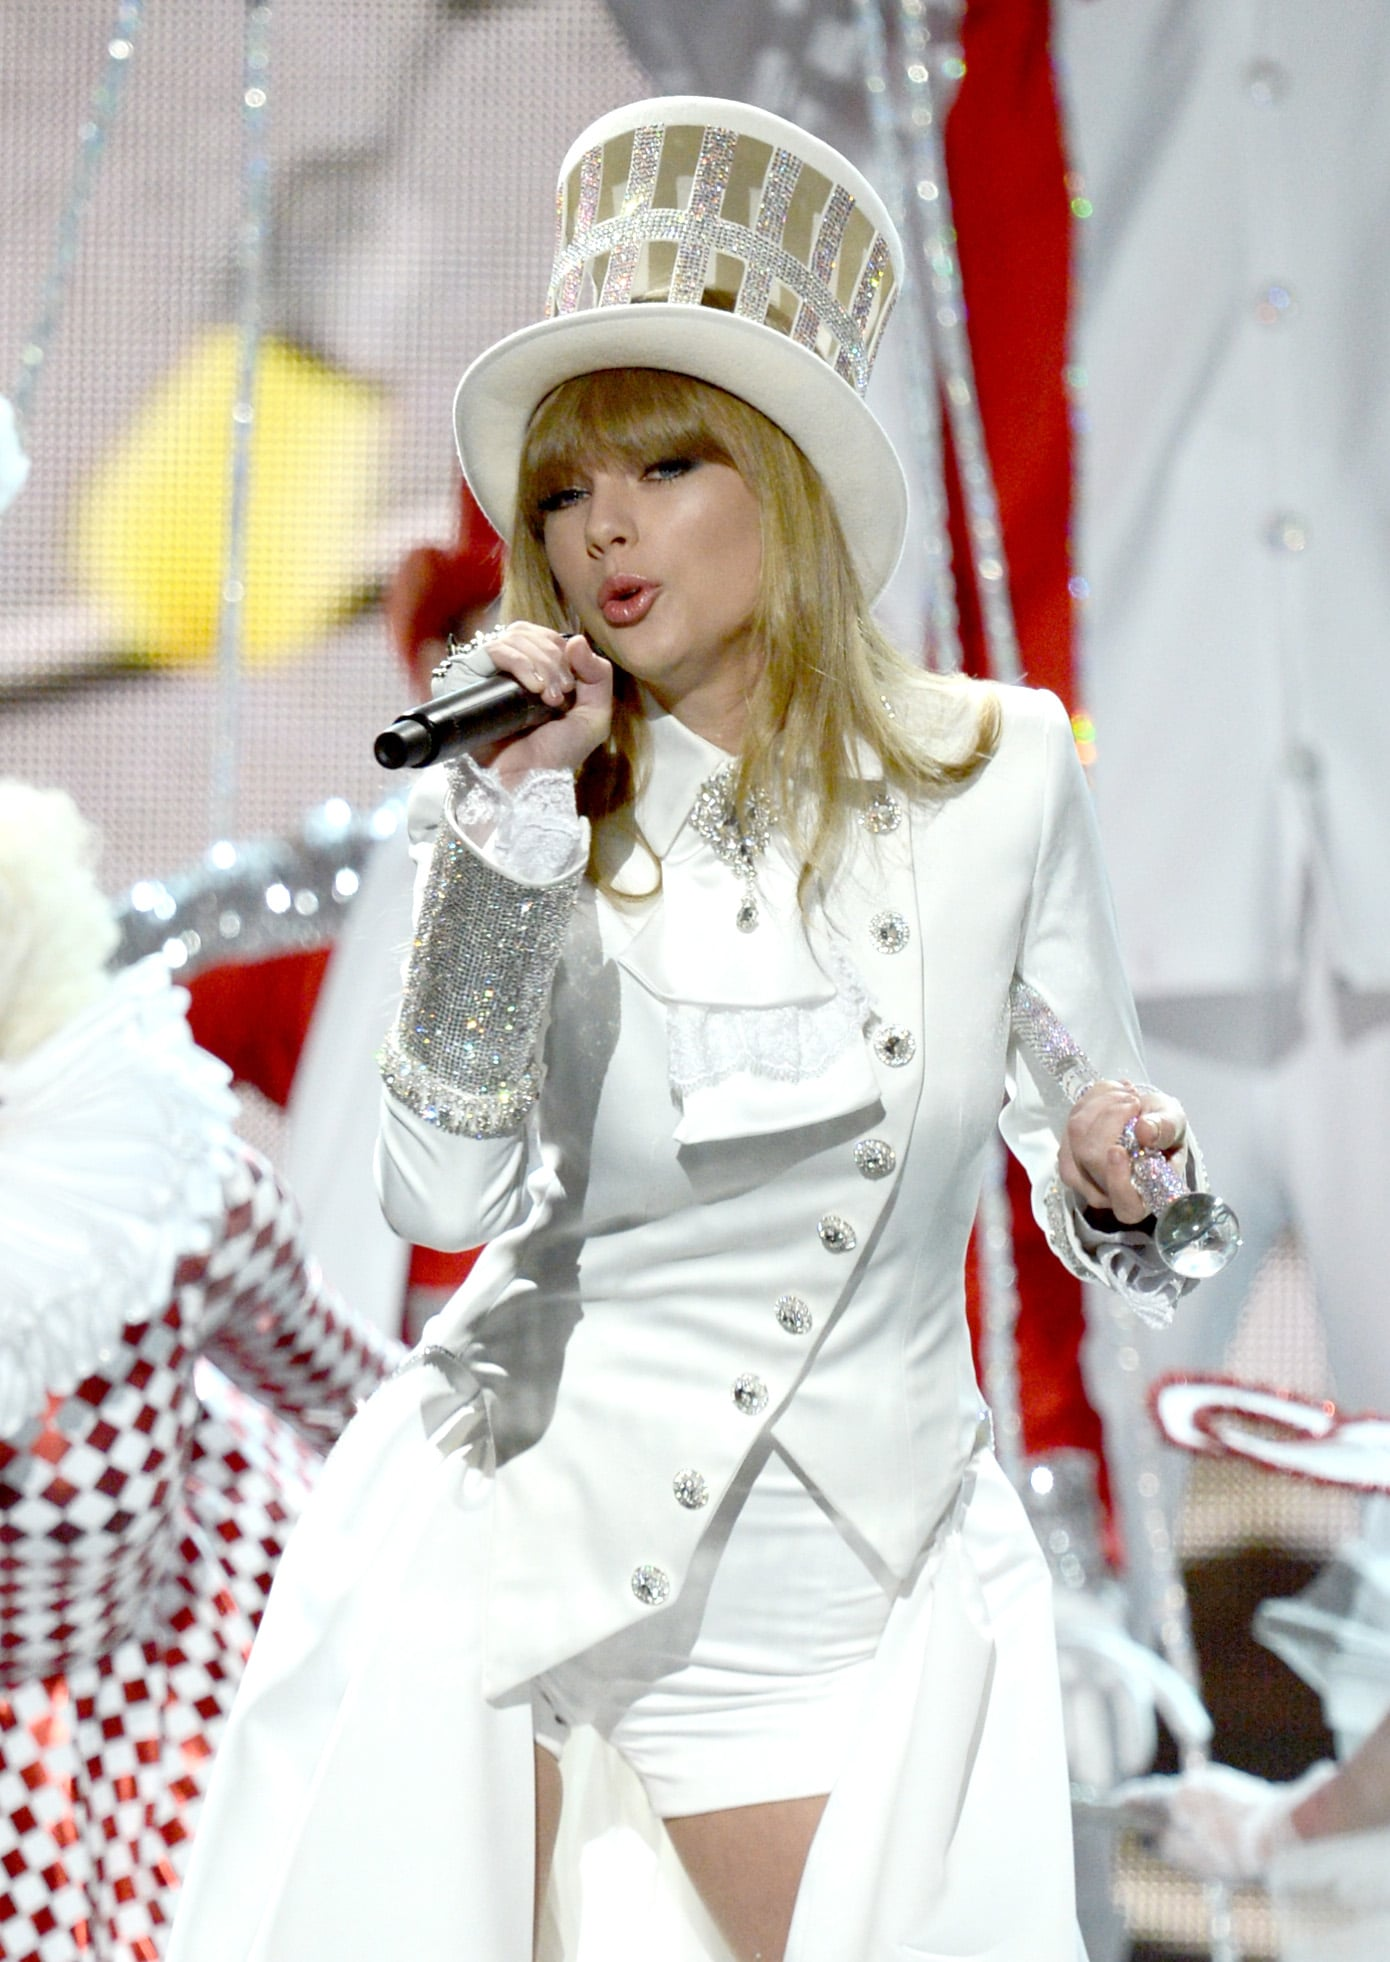 Taylor Swift performed at the Grammy Awards.